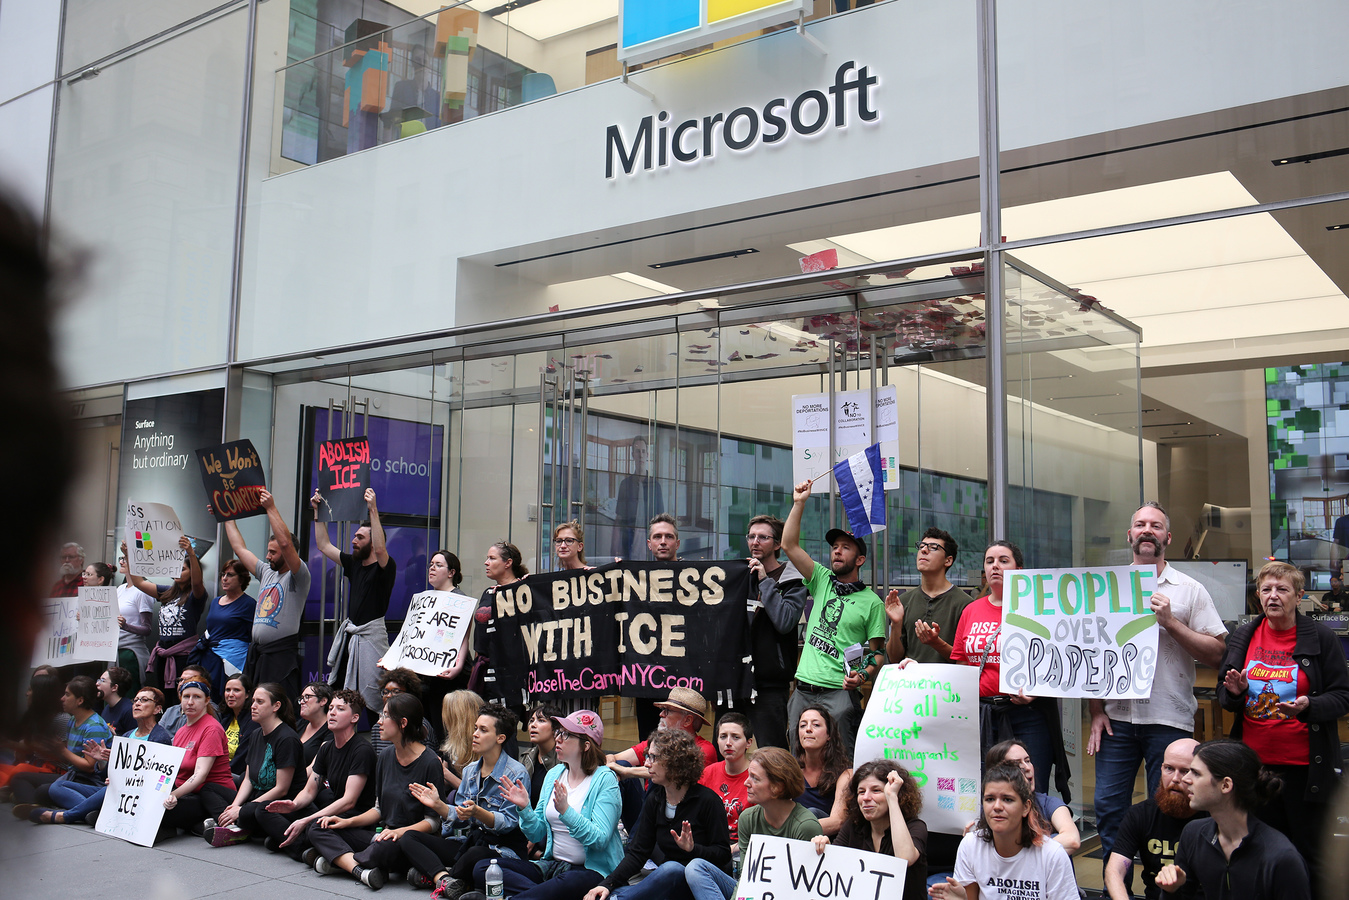 Close The Camps No Business With ICE Microsoft Flapship Store NYC 9/14/19